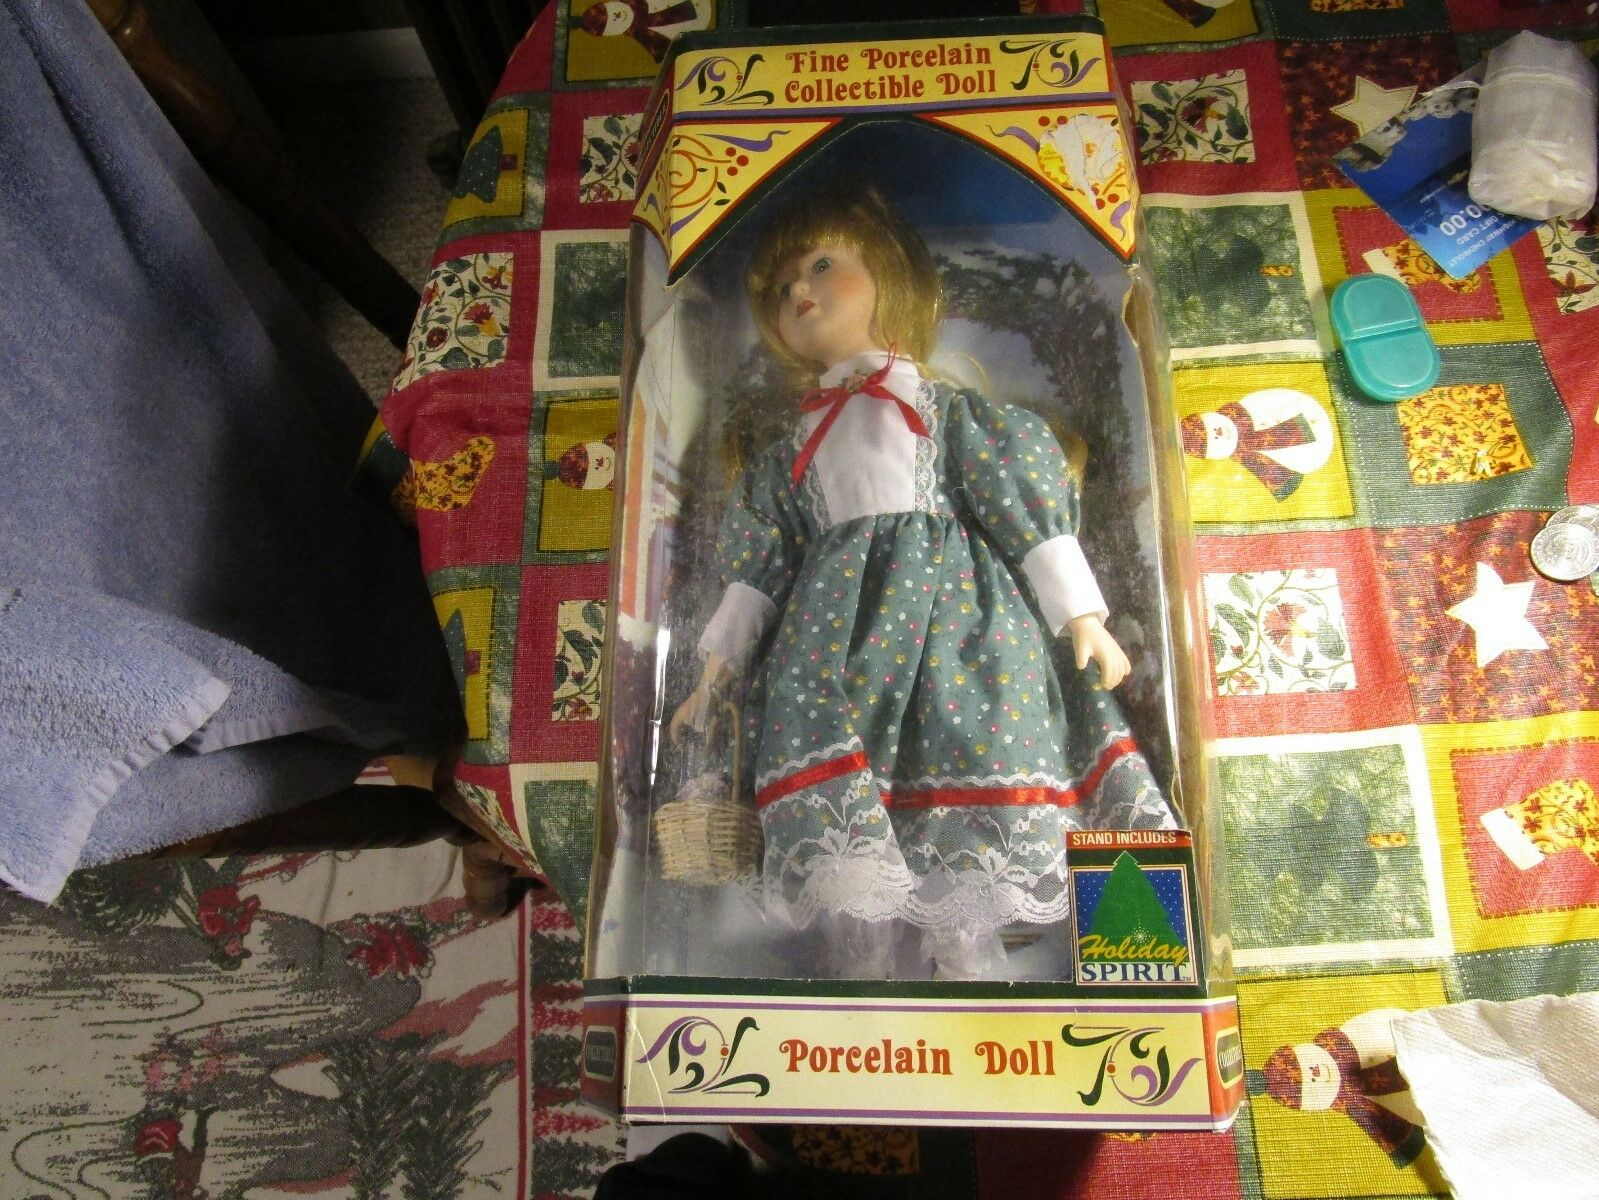 VNT Holiday Spirit McCrory Stores Limited Edition Fine Porcelain 16  Doll~RARE